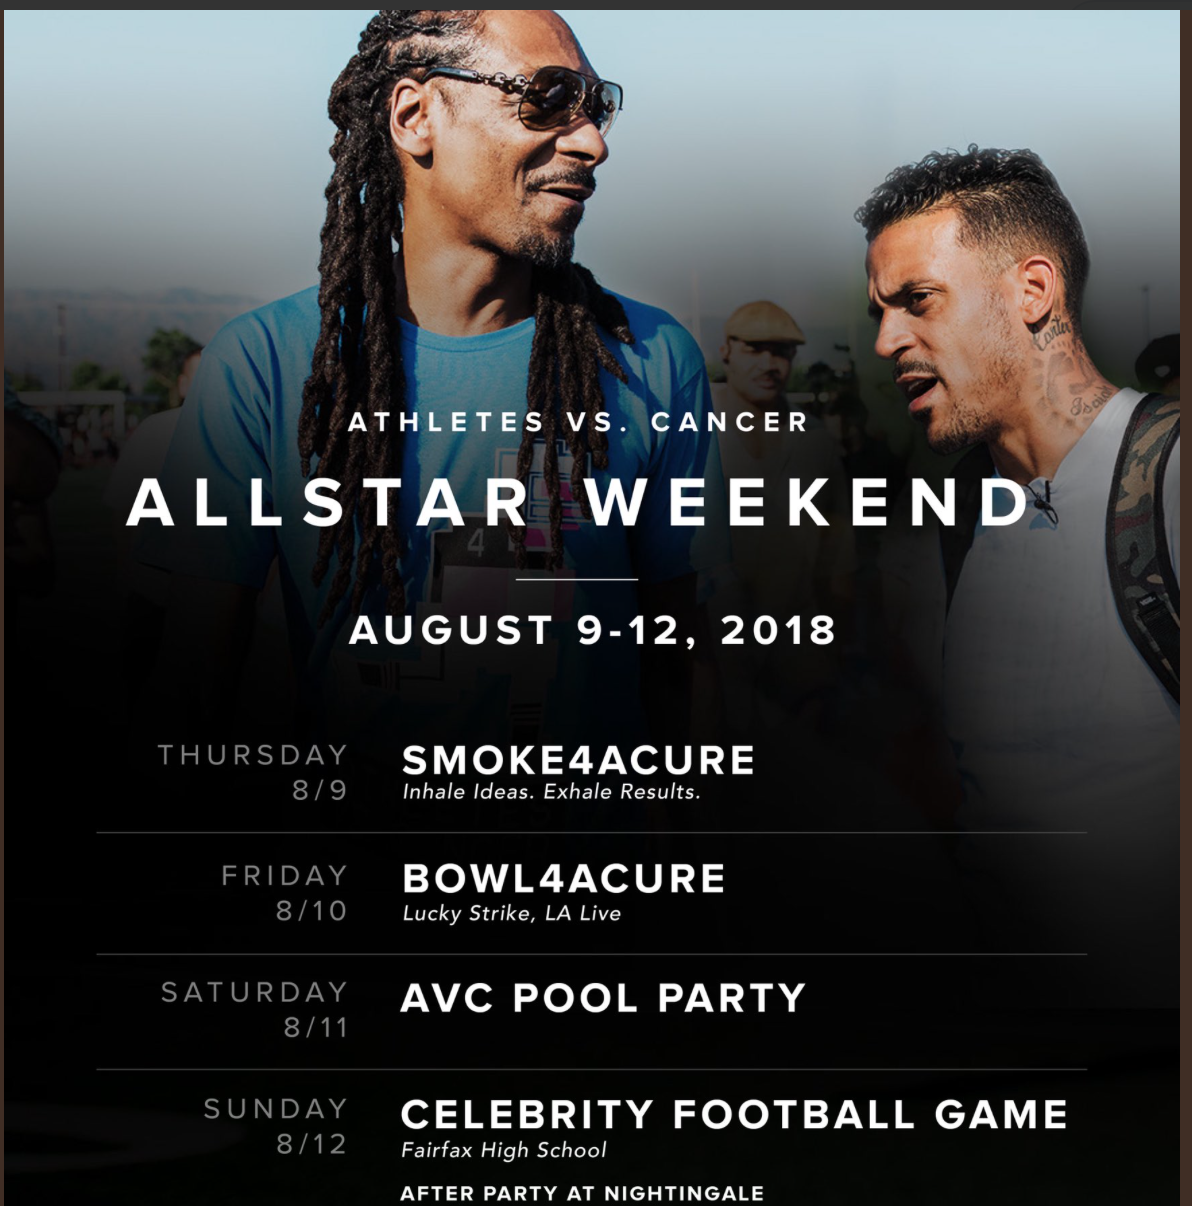 HustleTV.tv-Matt-Barnes-Snoop-Dogg-Athletes-vs-Cancer